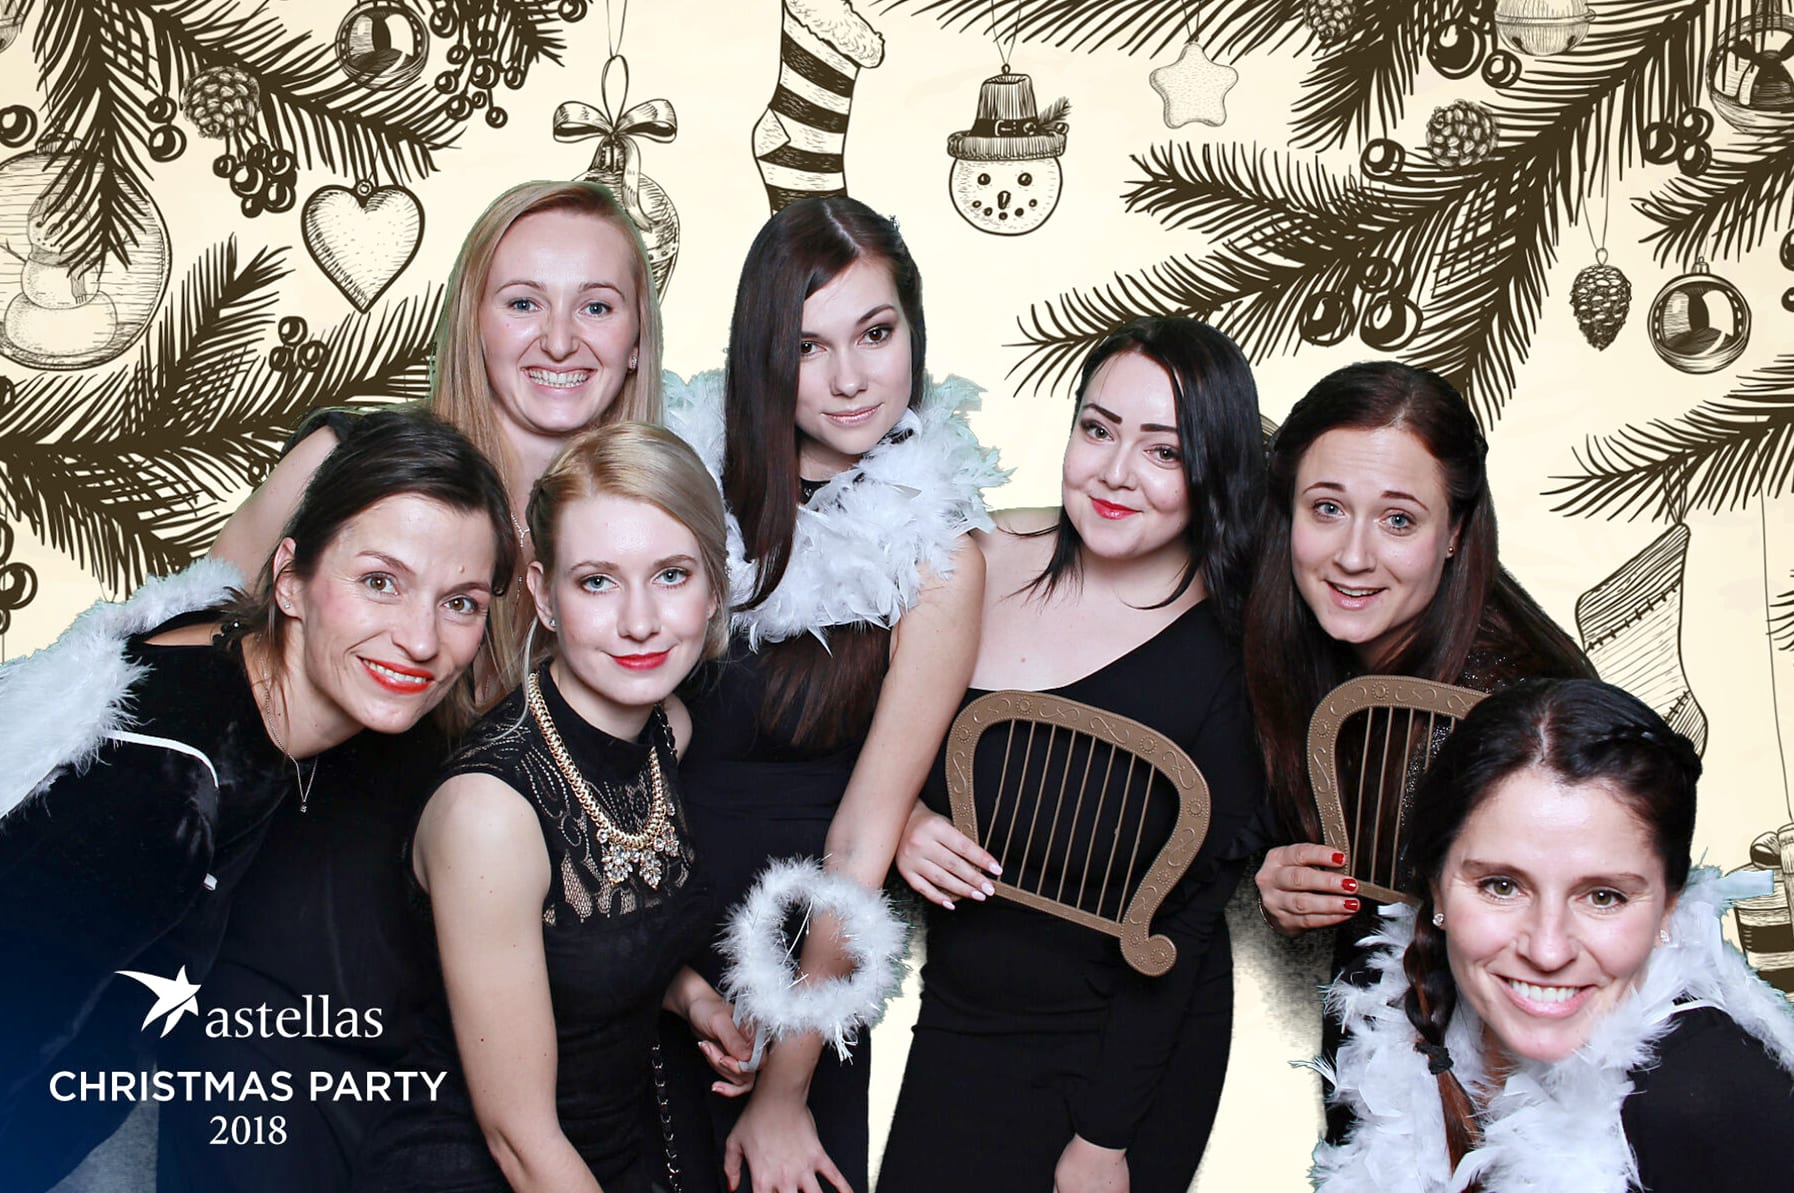 fotokoutek-astellas-christmas-party-13-12-2018-543580